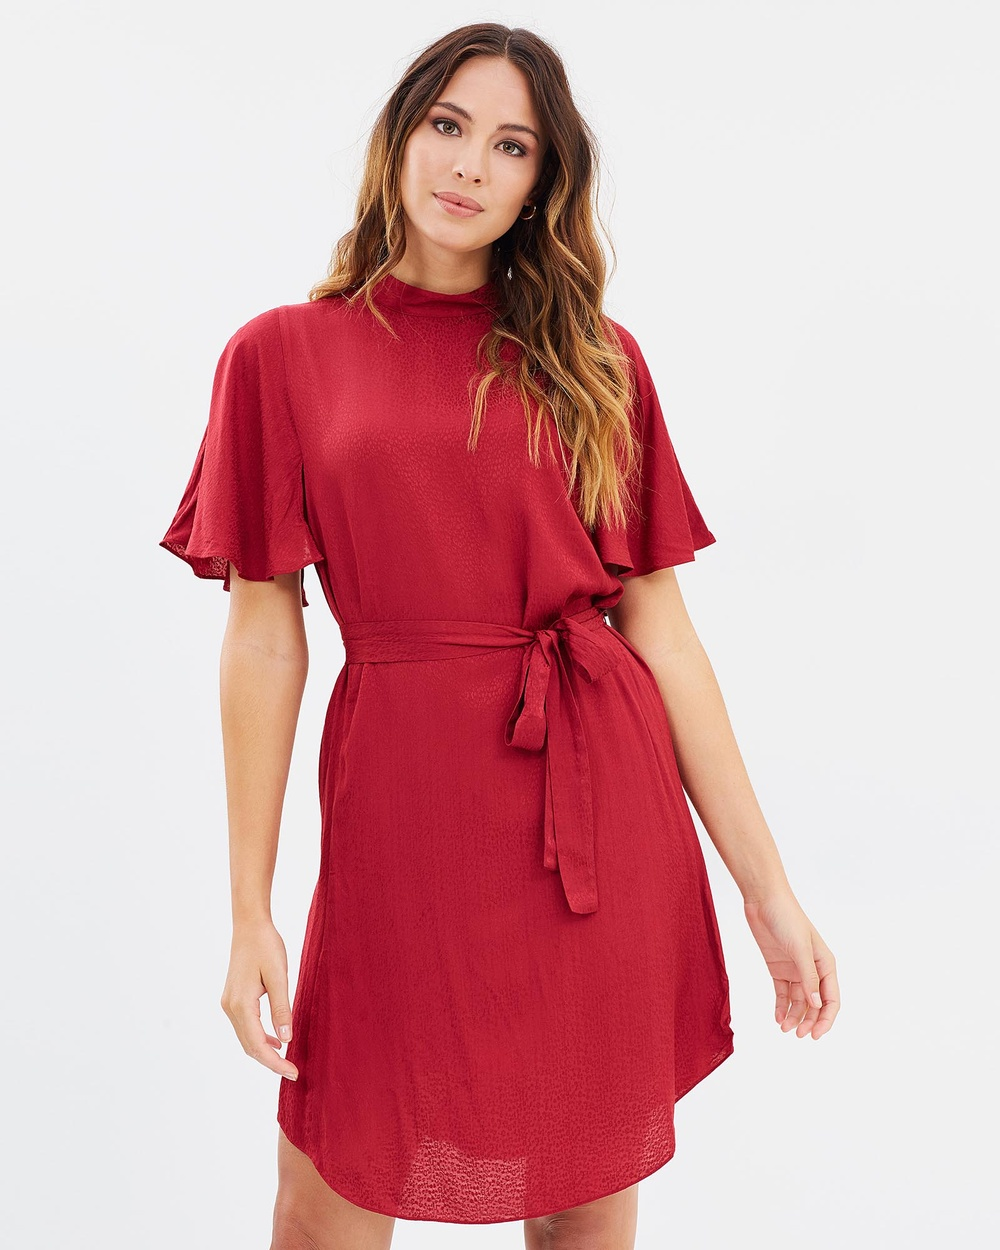 SABA Meadow Dress Dresses Garnet Meadow Dress